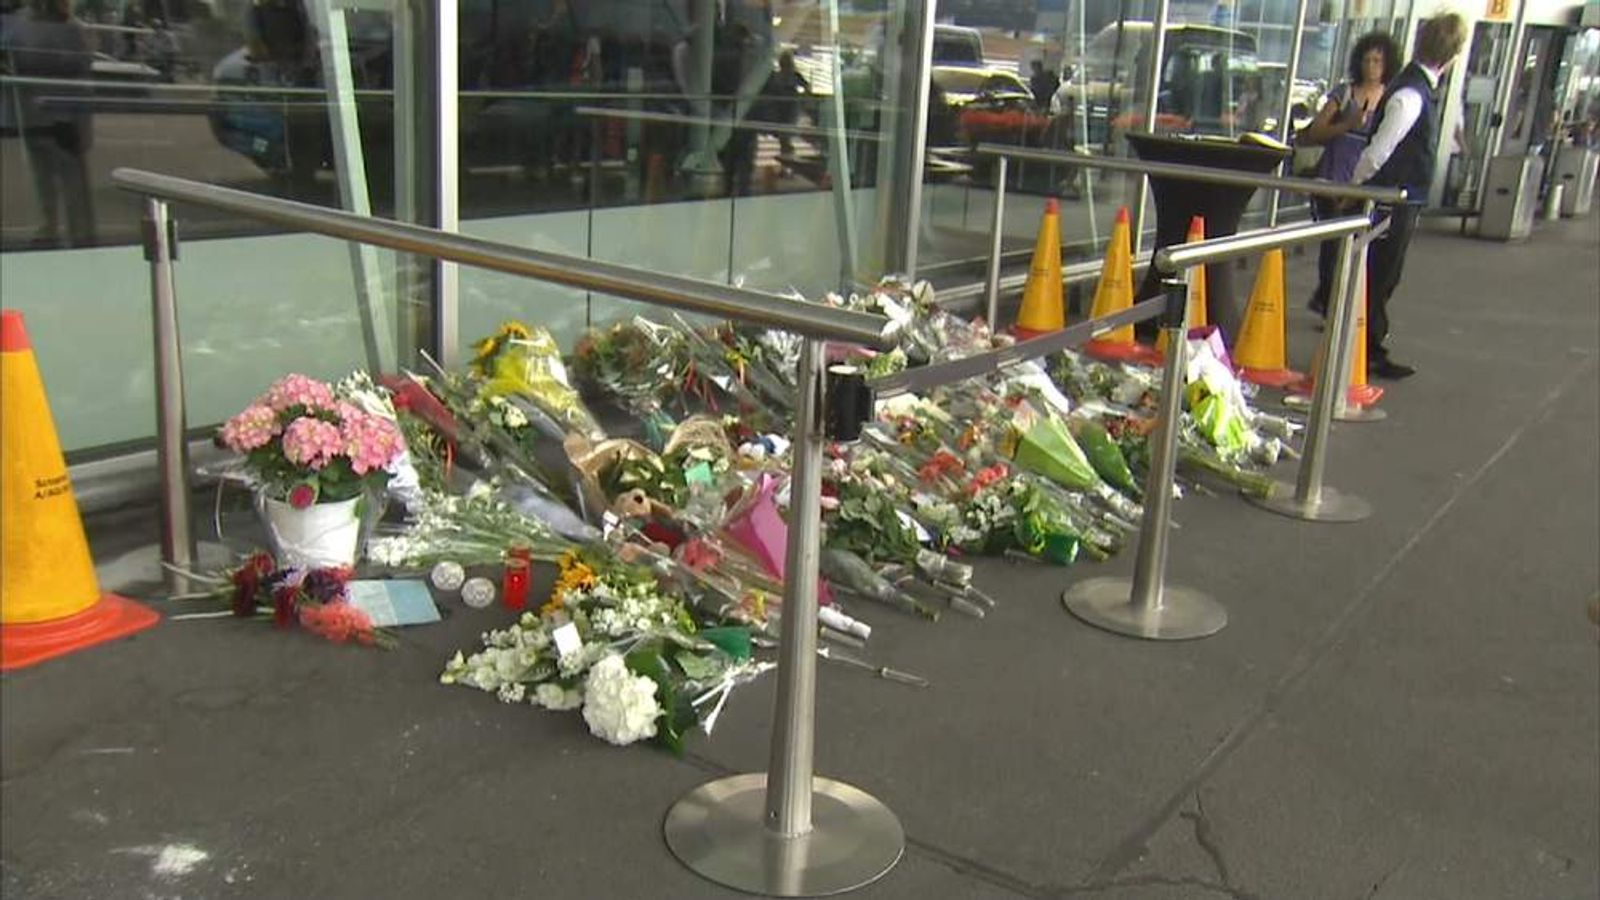 Flowers for the victims of flight MH17 at Amsterdam's Schiphol Airport.